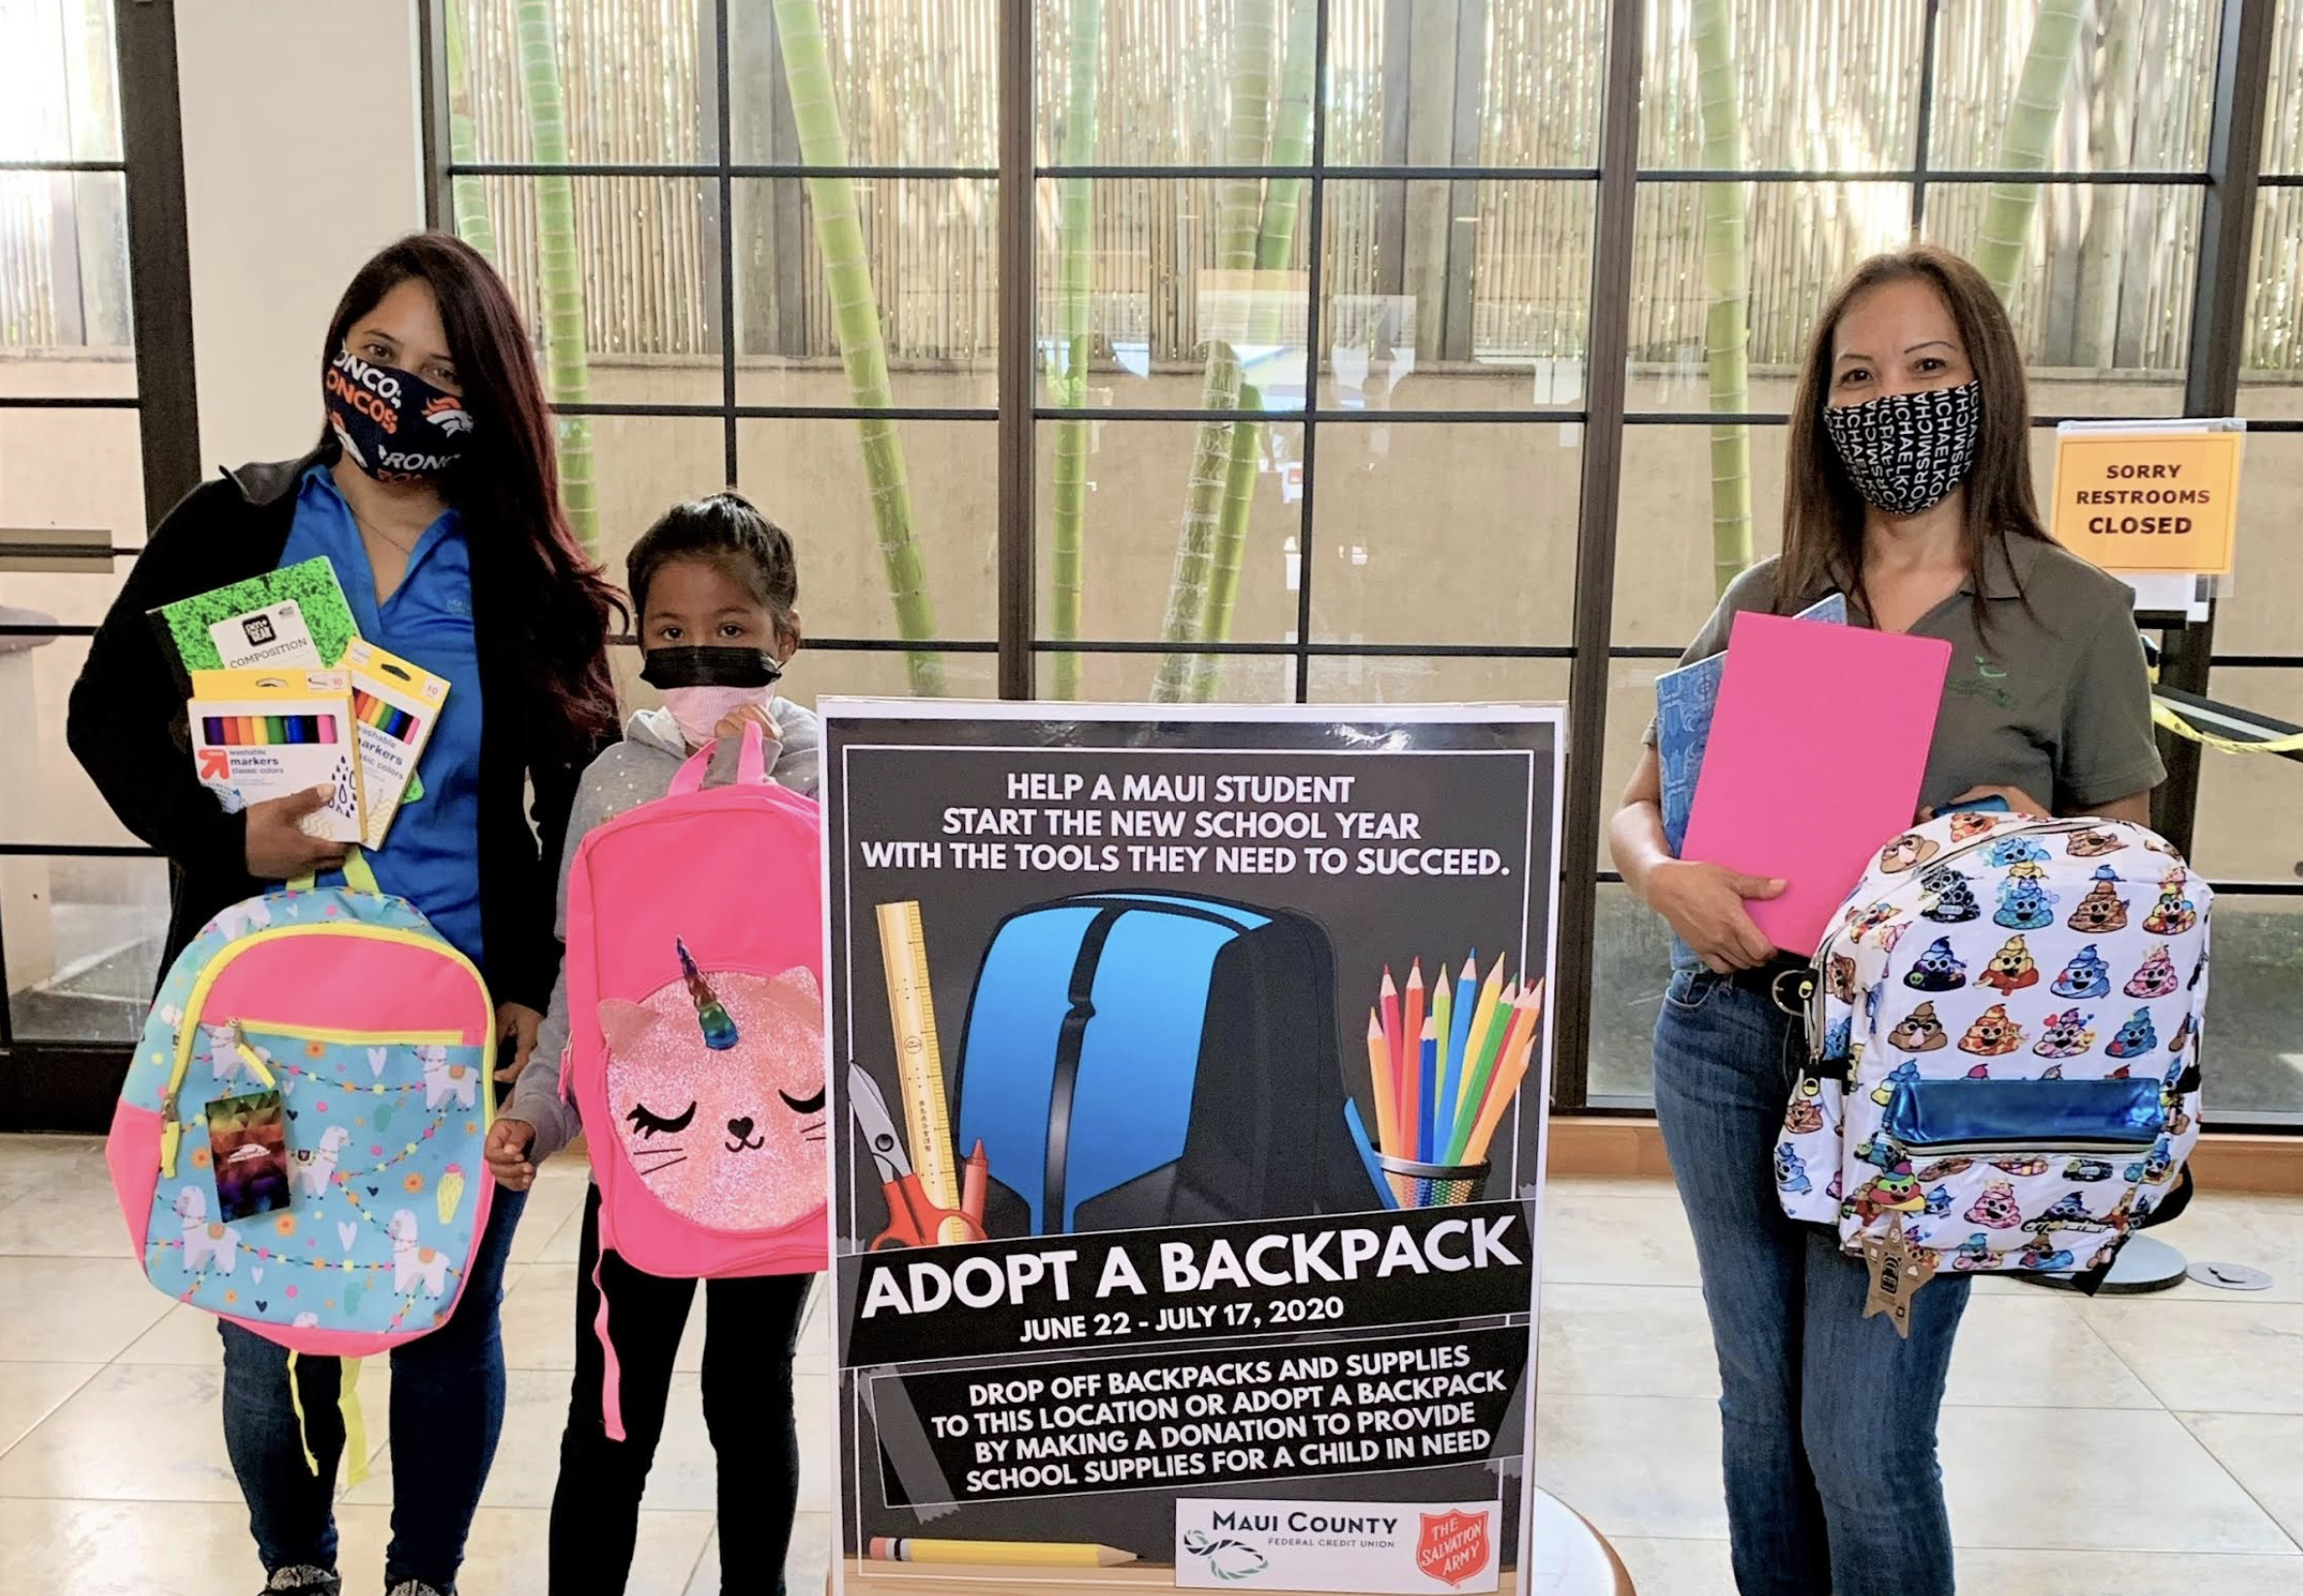 School Supplies Drive for Maui Kids in Need, Through July 16